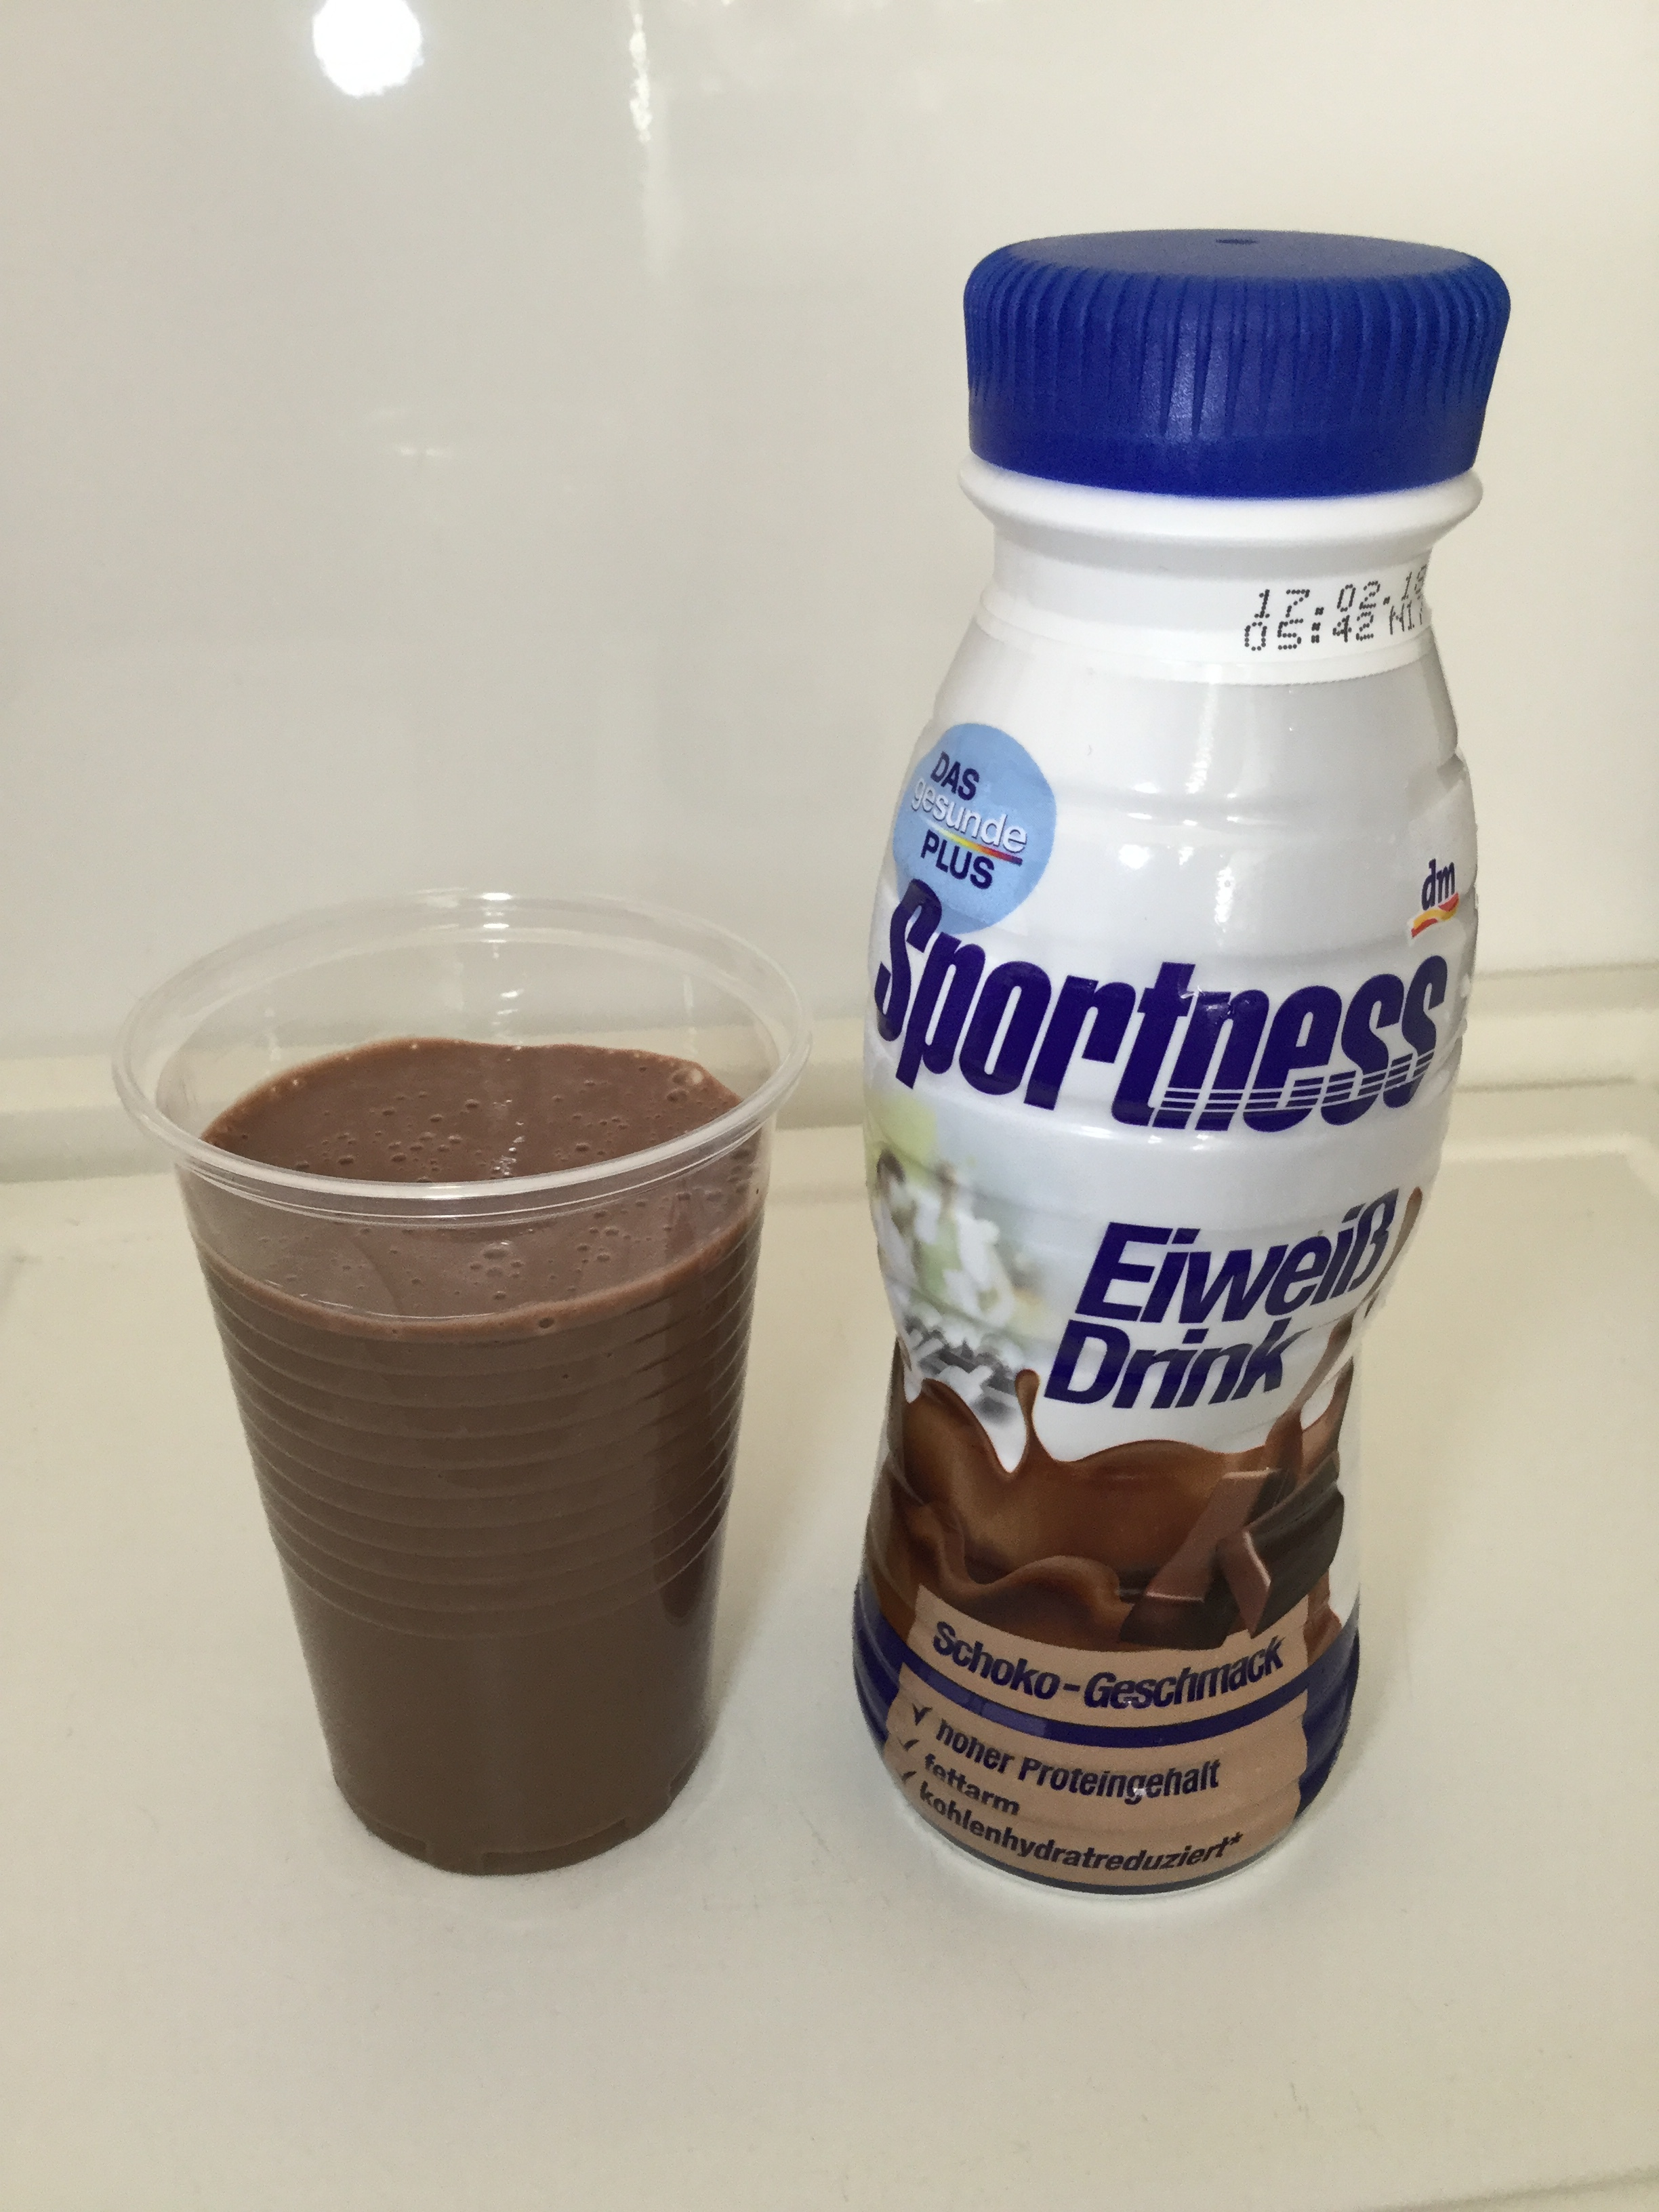 DM Sportness Chocolate Protein Drink Cup